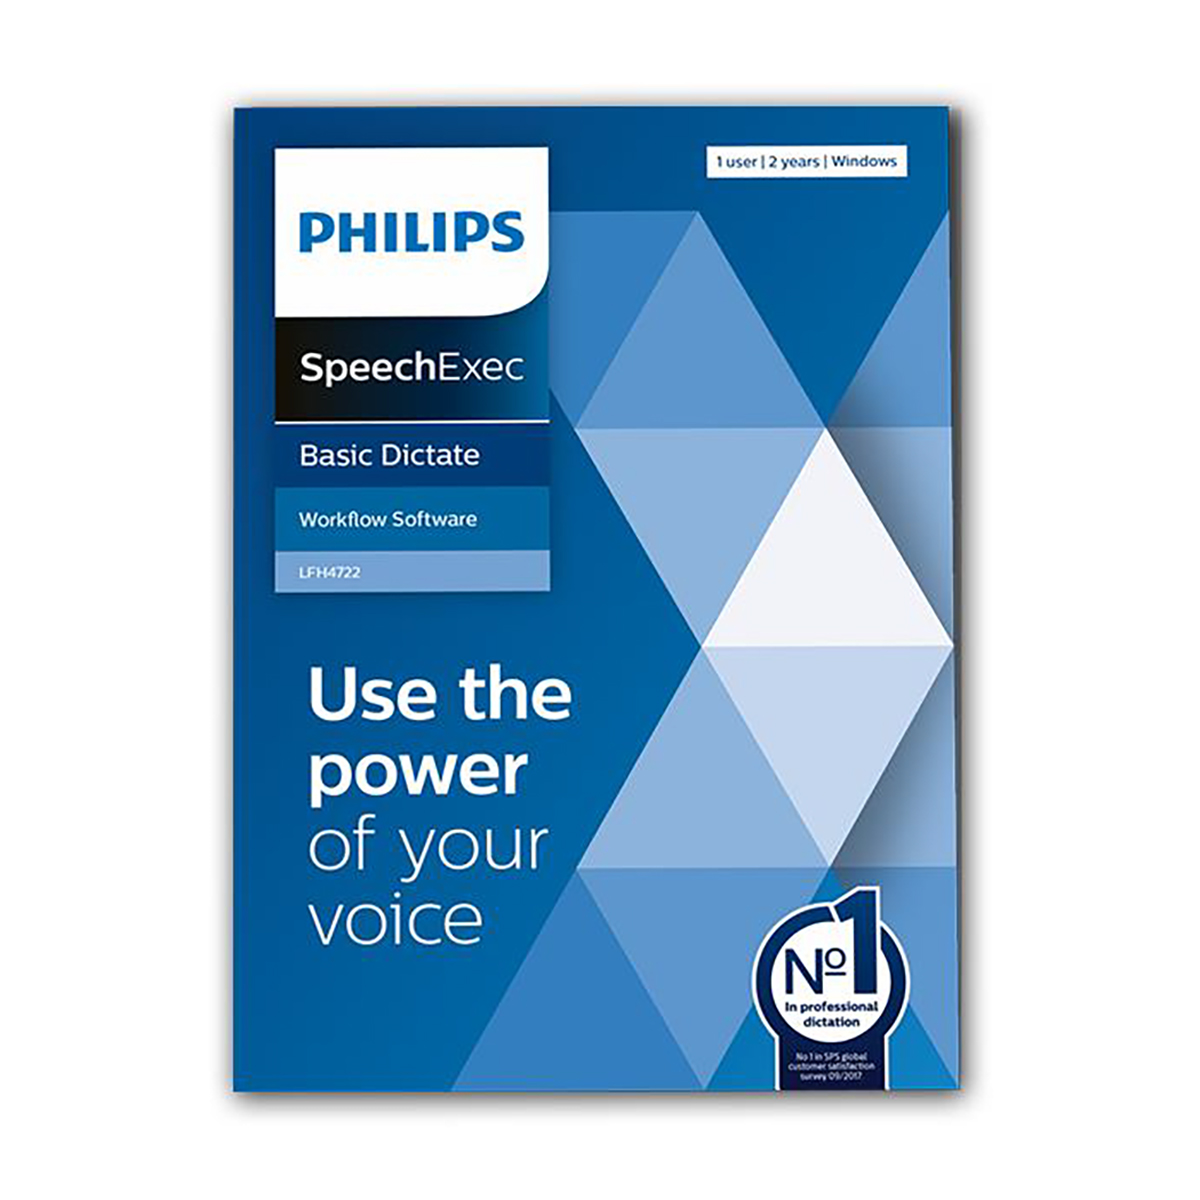 Philips LFH4722 SpeechExec 11 Dictate 2 Year Subscription Boxed